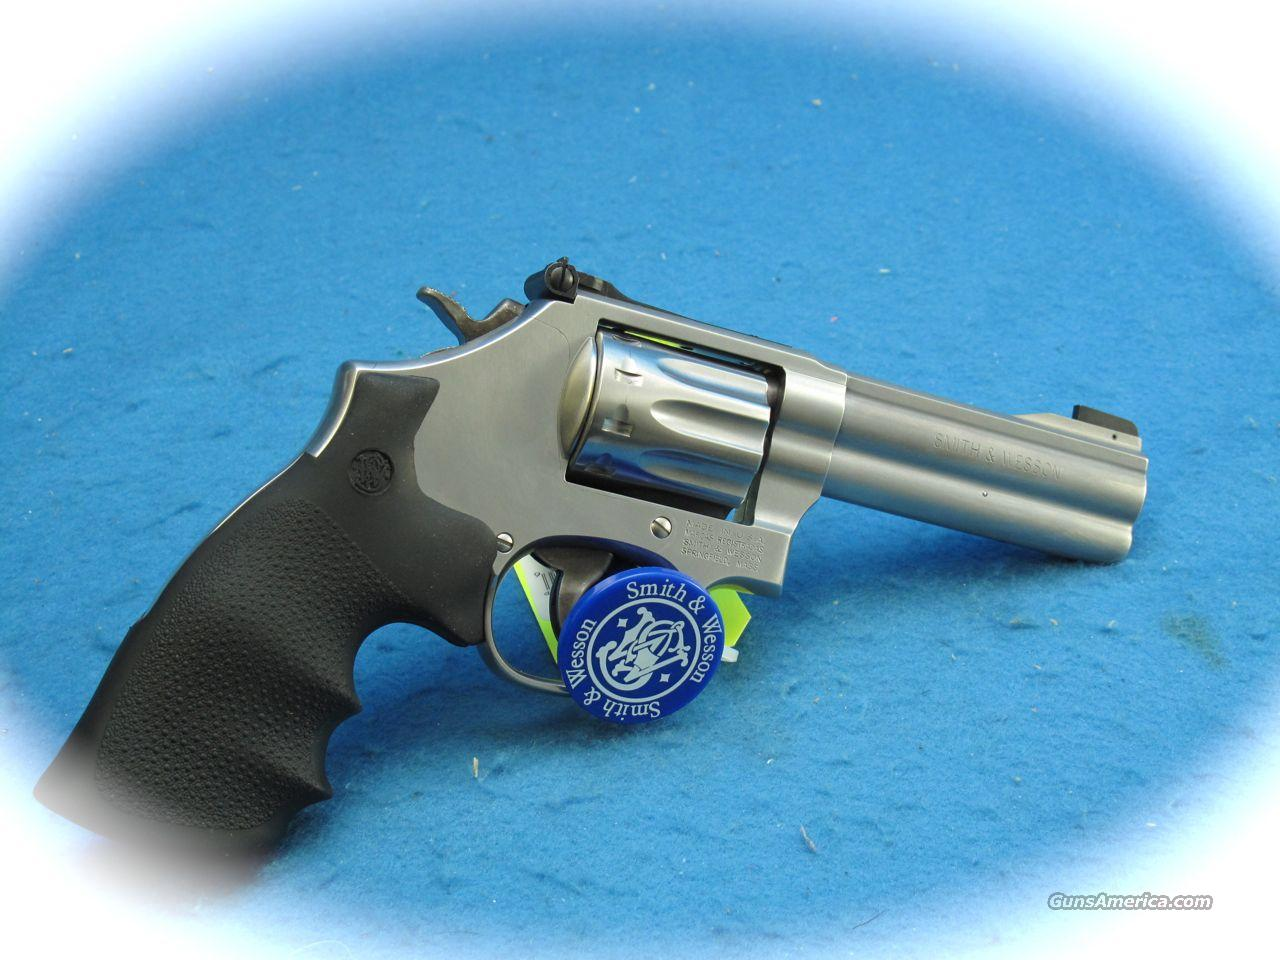 Smith & Wesson Model 617 22 Cal Revolver 4 inch Bbl **NEW**  Guns > Pistols > Smith & Wesson Revolvers > Full Frame Revolver